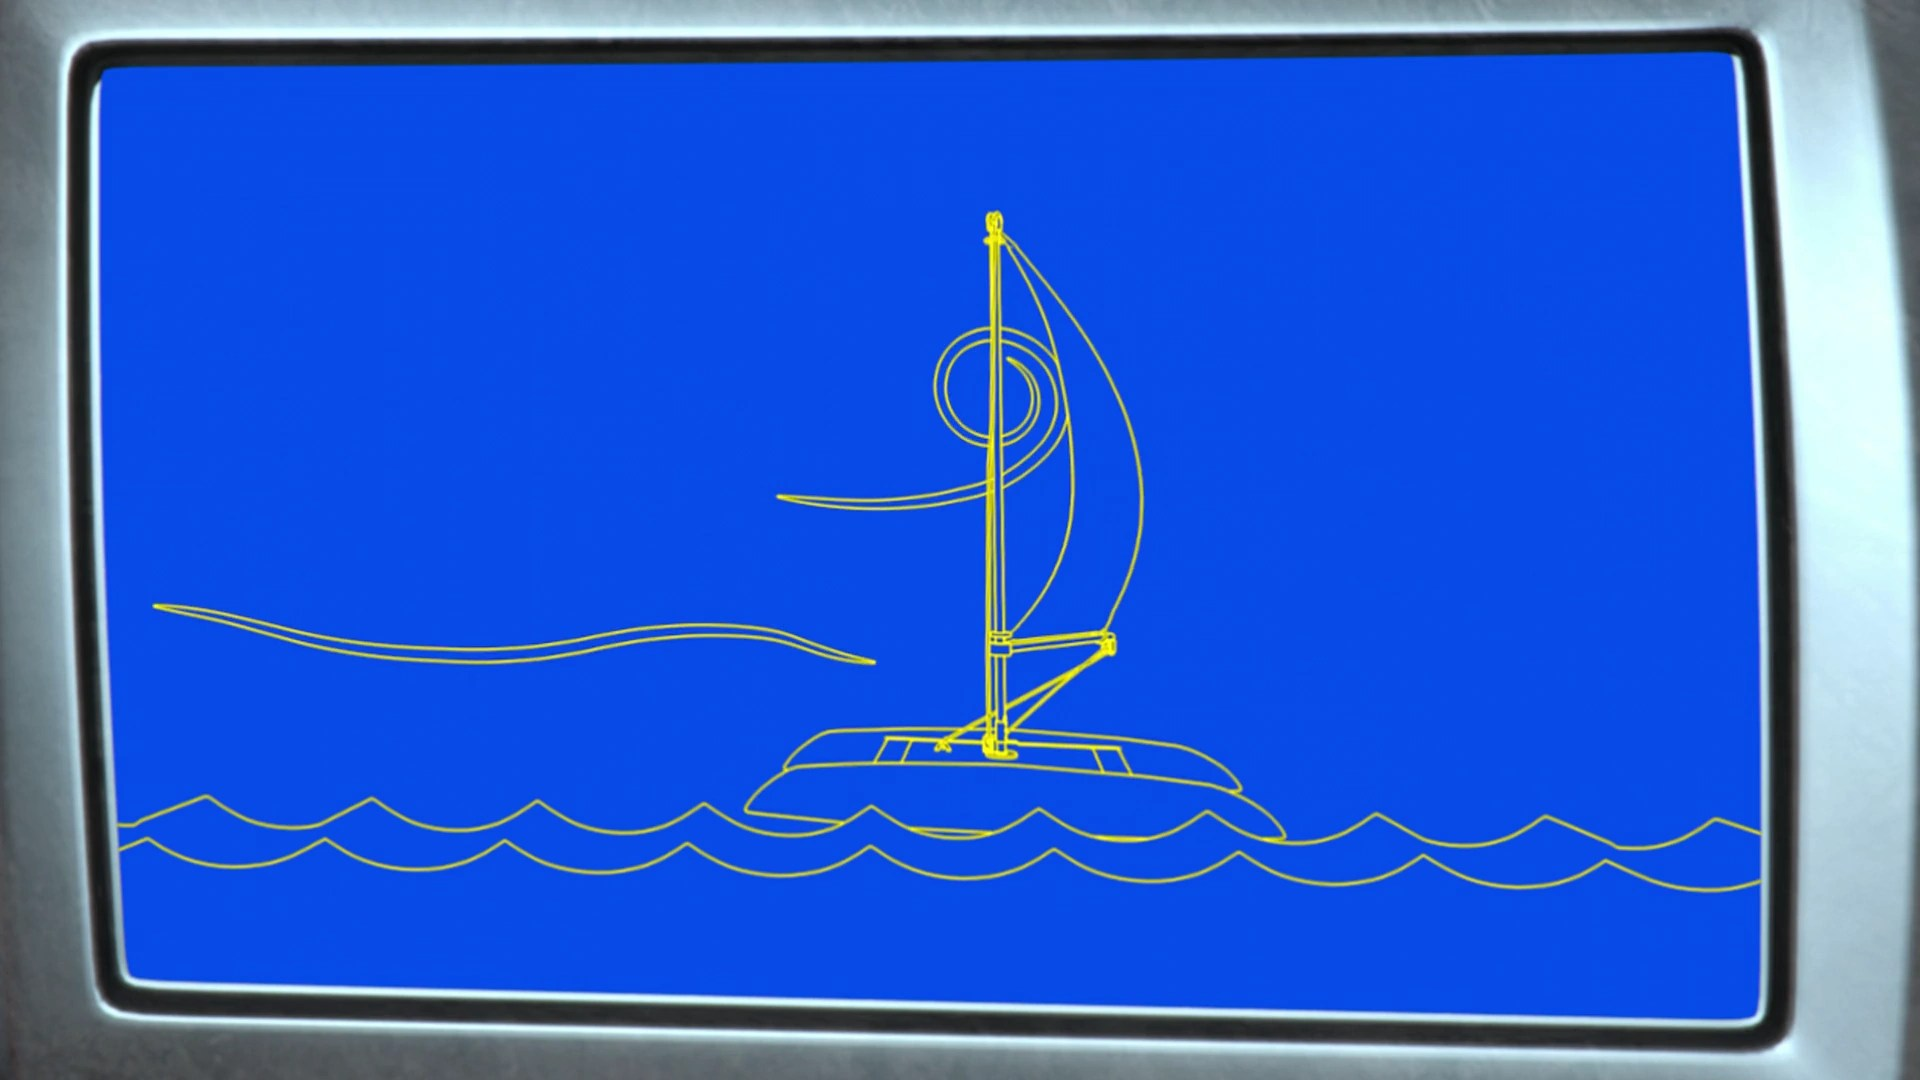 hight resolution of s3e17 diagram of wind pushing a sailboat png